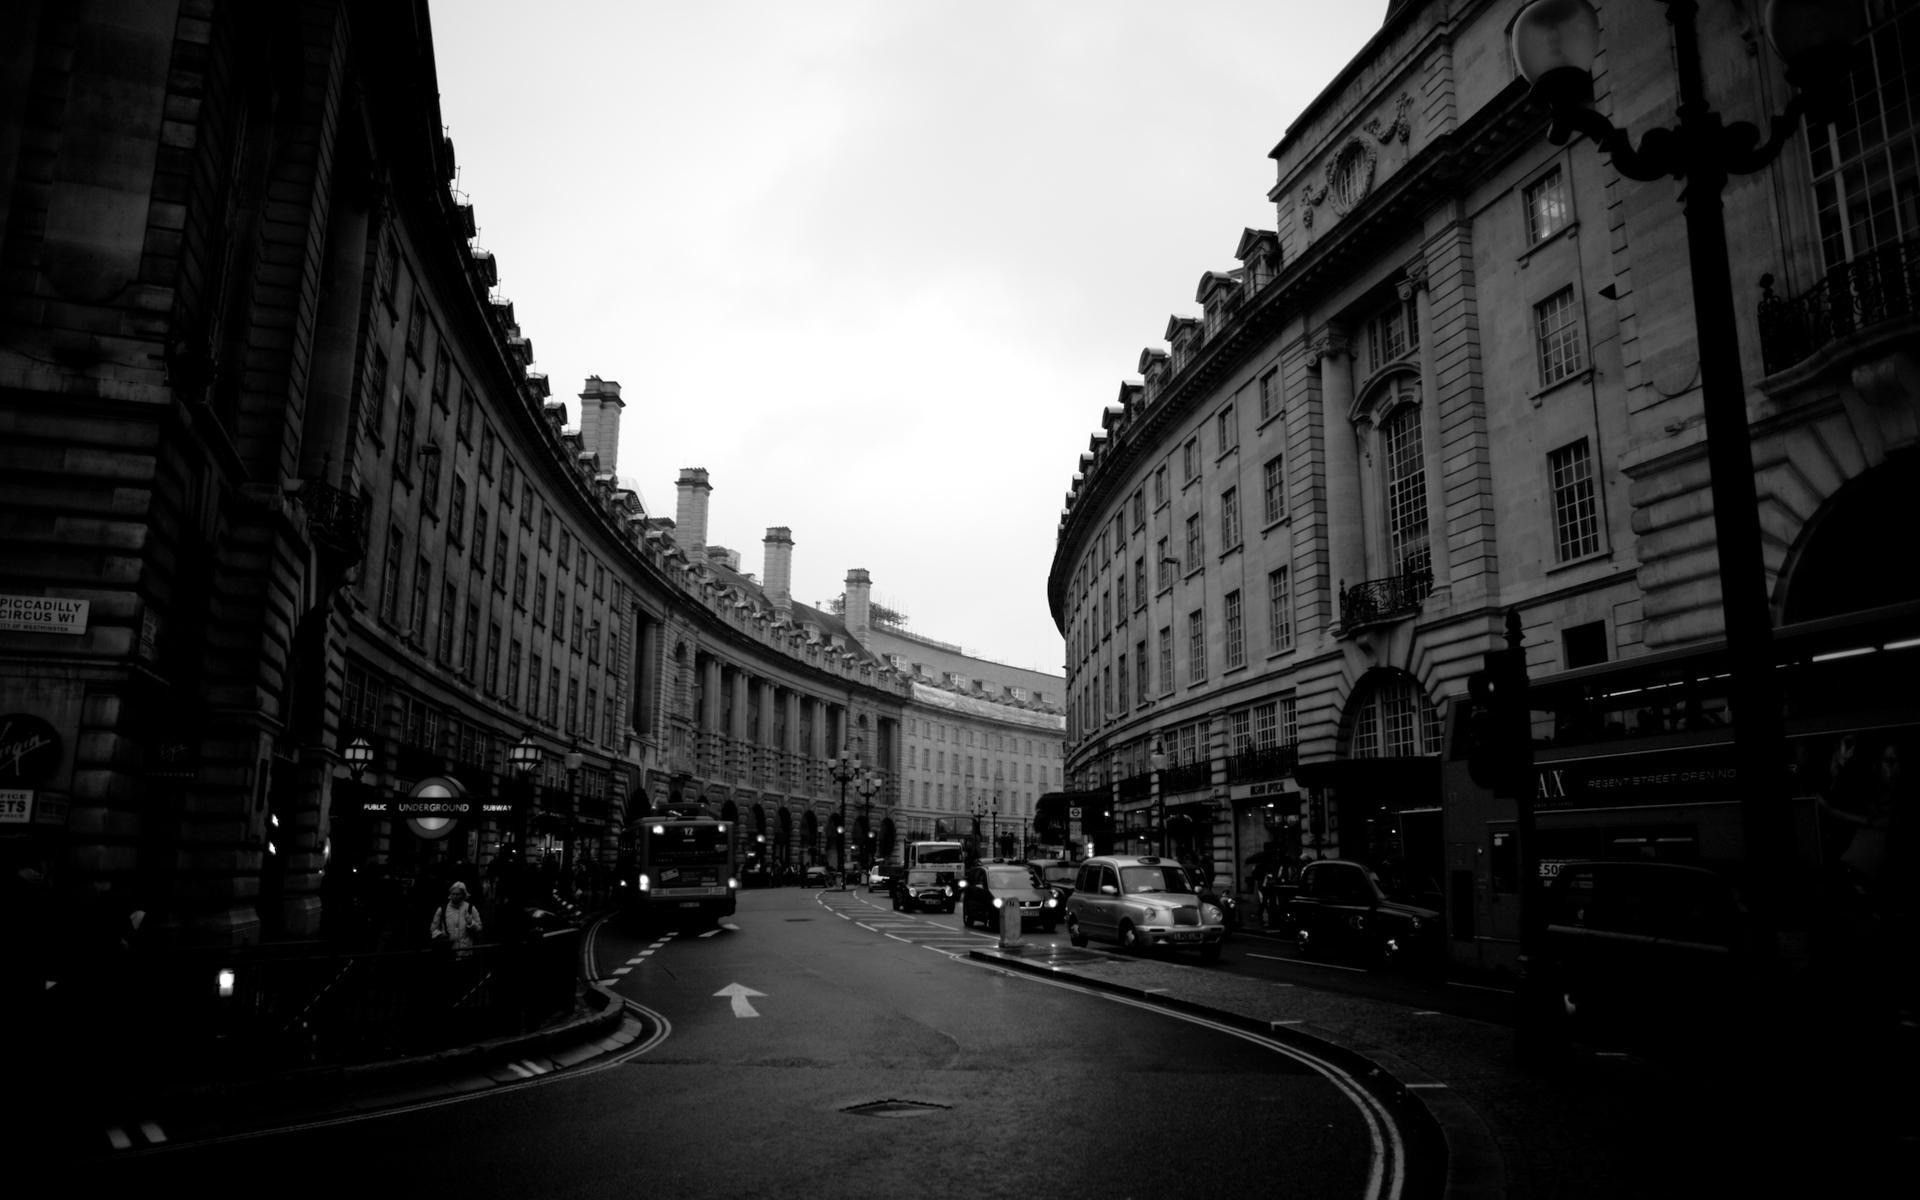 London Street Wallpaper High Quality Resolution Free Download